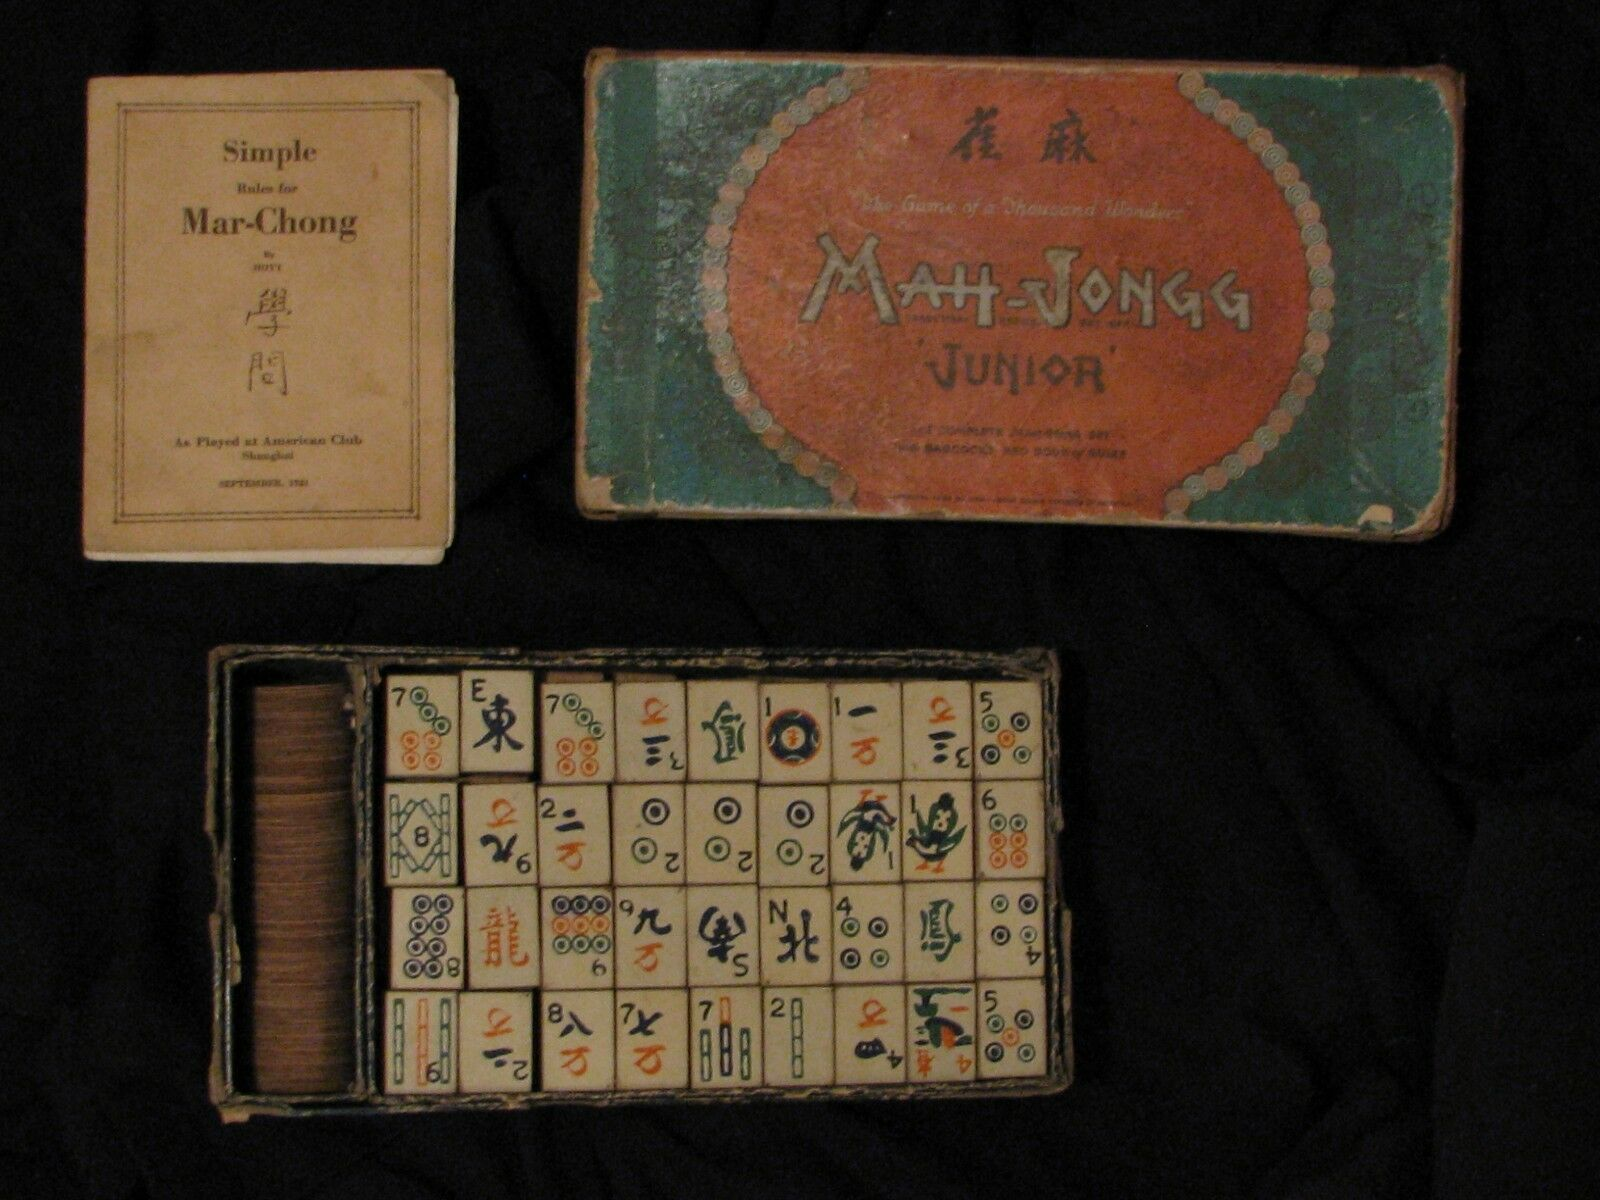 MAH-JONGG JR. VINTAGE 1923, wooden tiles